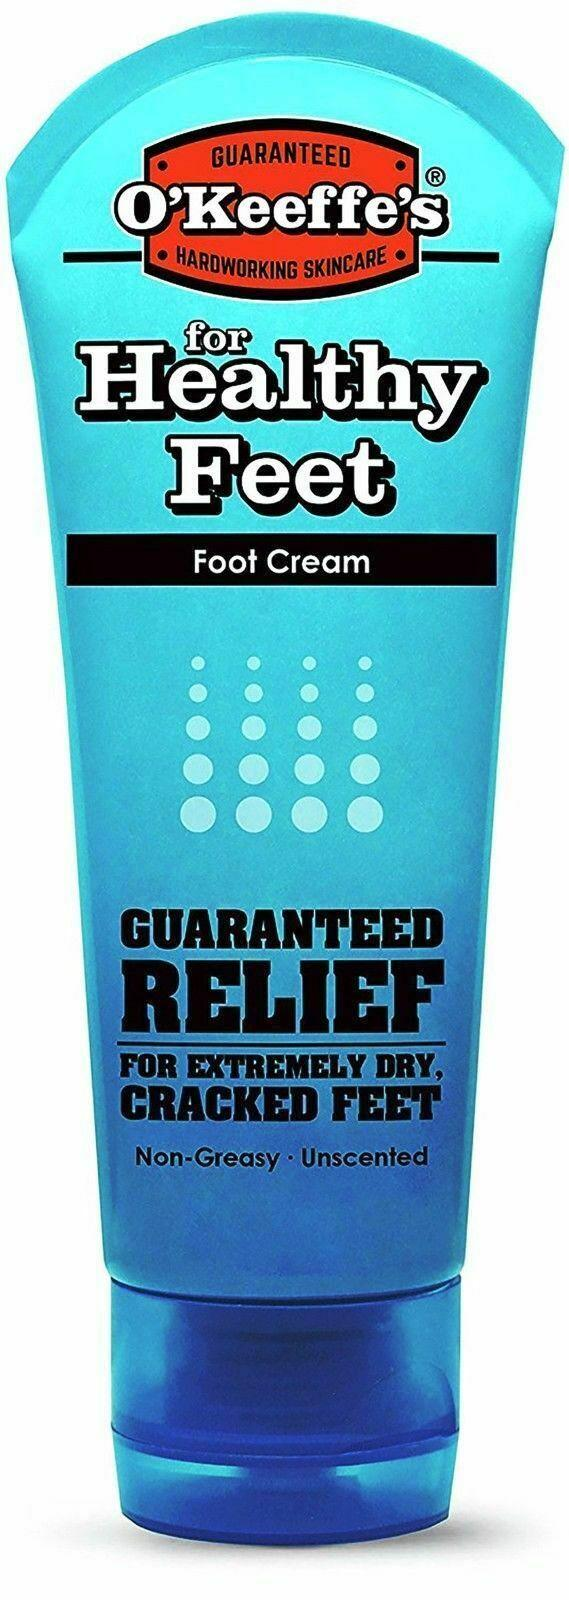 O Keeffes Healthy Foot Feet Cream 85g Tube For Extremley Cracked Dry Split Skin